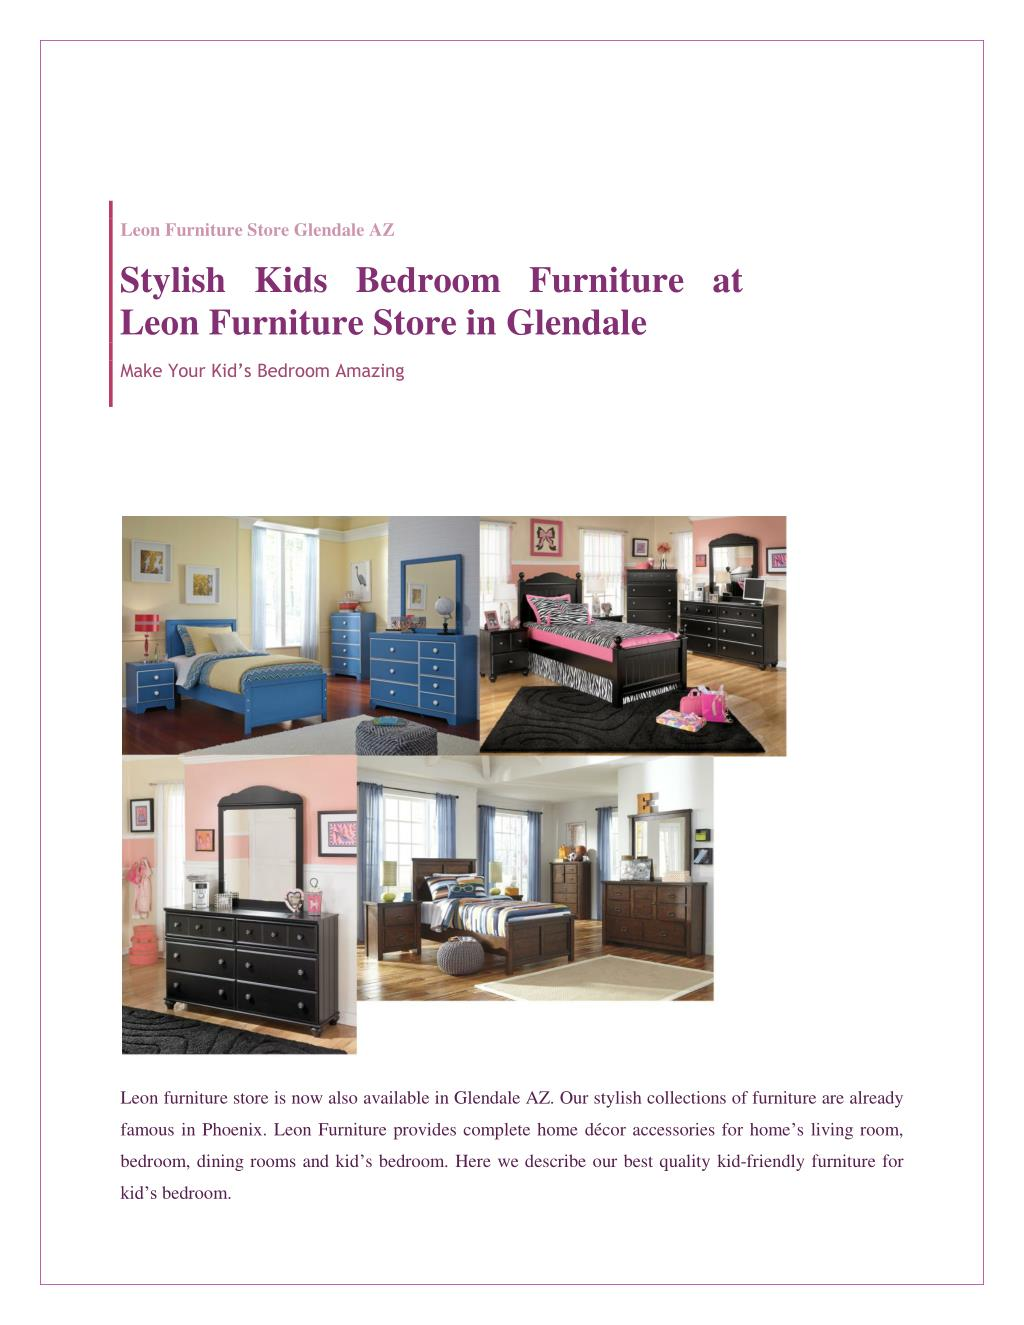 Stylish kids bedroom furniture at leon furniture store in glendale powerpoint ppt presentation